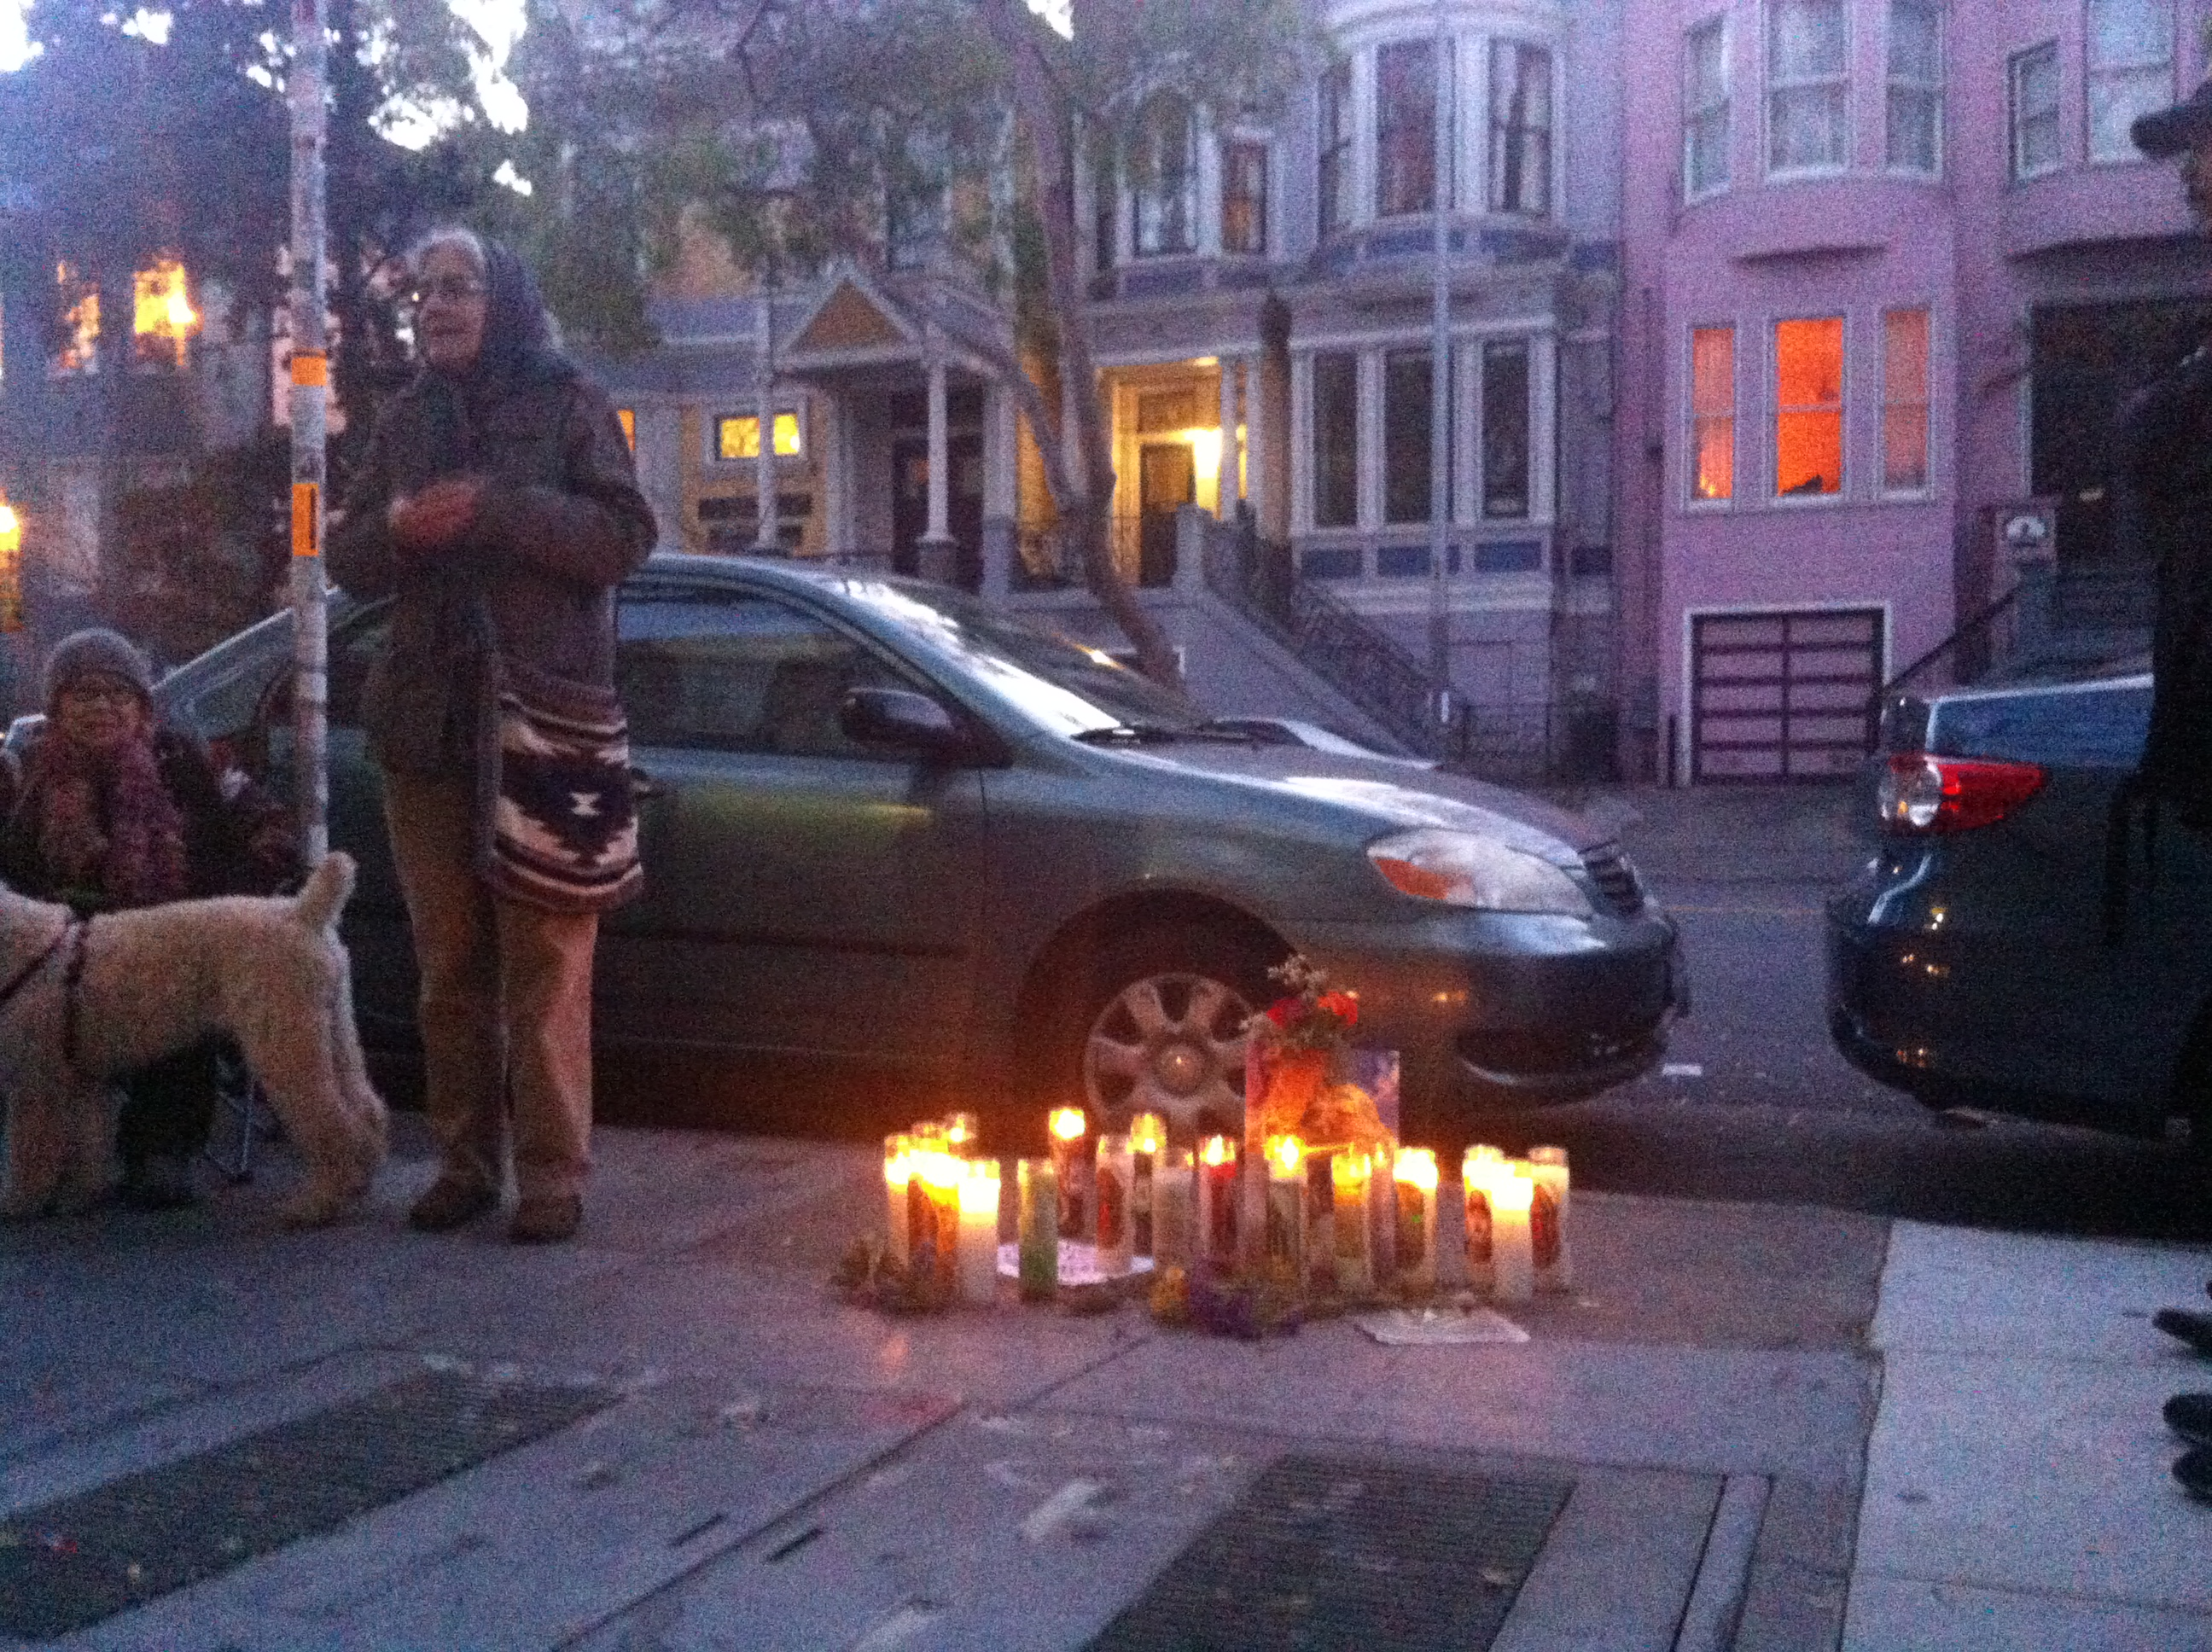 At Vigil on Folsom St, Sharply Different Account of Police Shooting